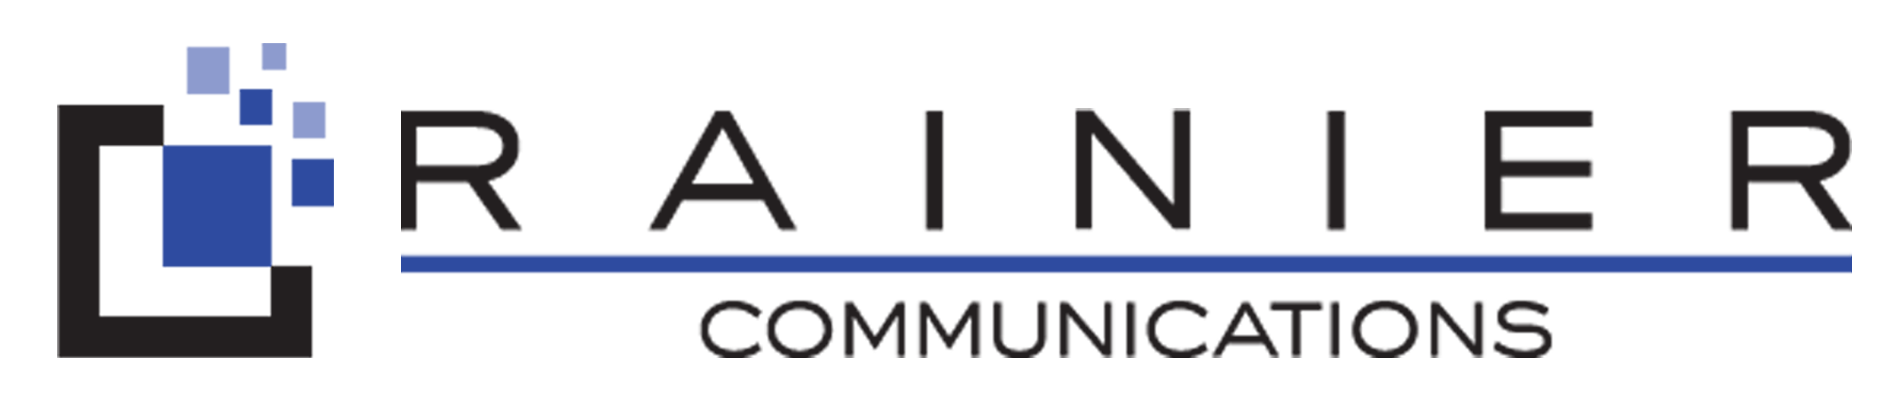 Rainier Communications | Technology Public Relations